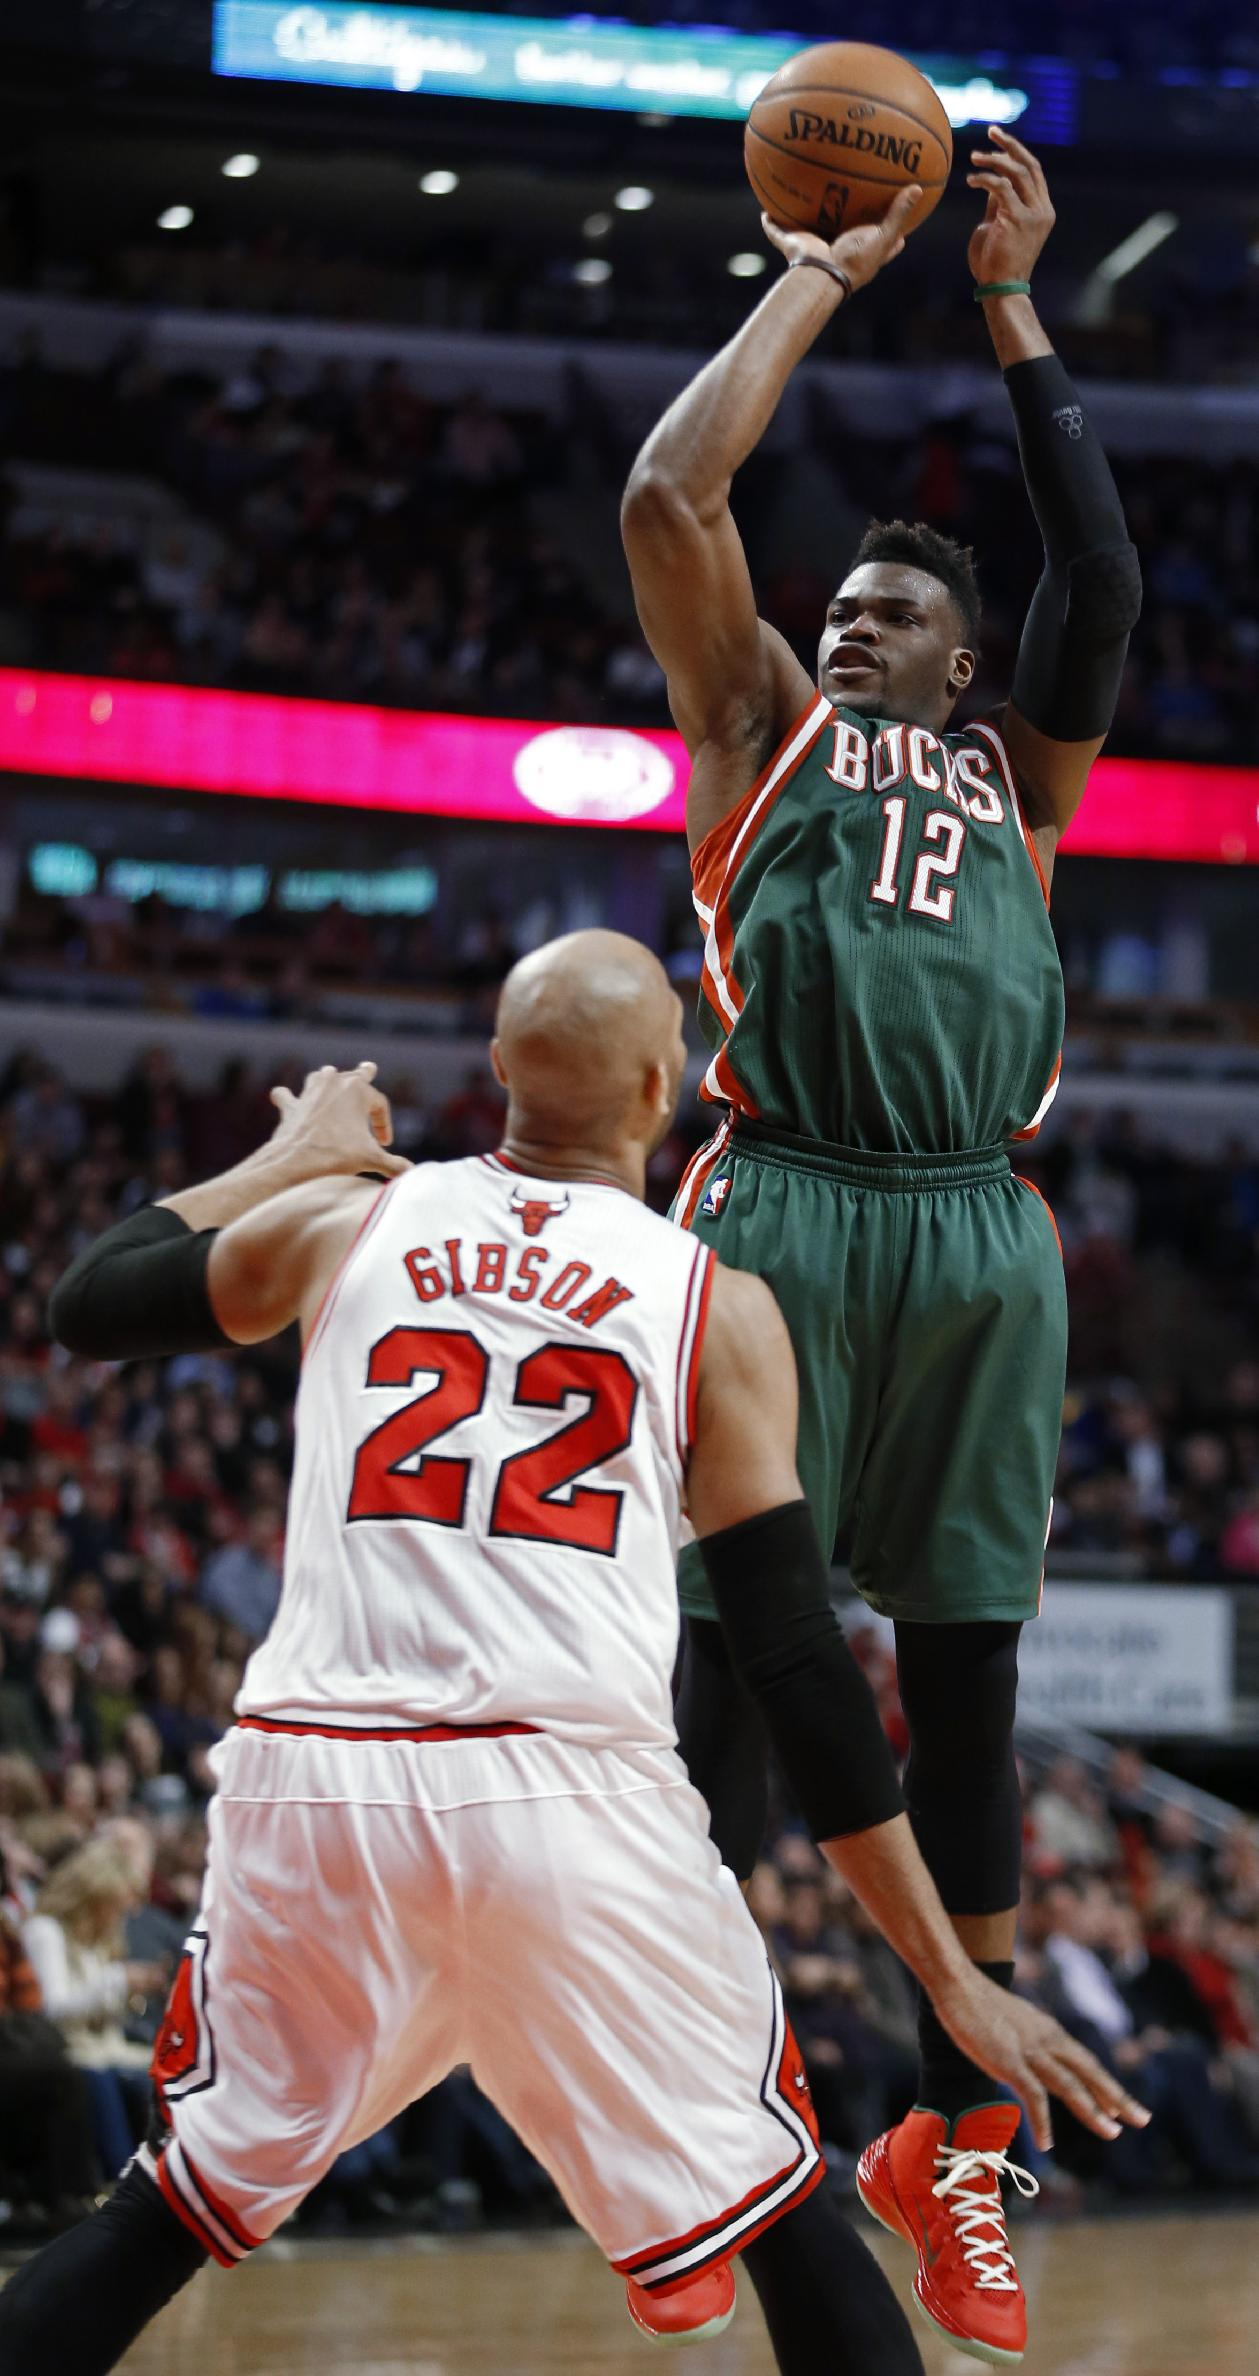 Milwaukee Bucks guard Jeff Adrien shoots over Chicago Bulls forward Taj Gibson during the second half of an NBA basketball game in Chicago, Friday, April 4, 2014. The Bulls won 102-90